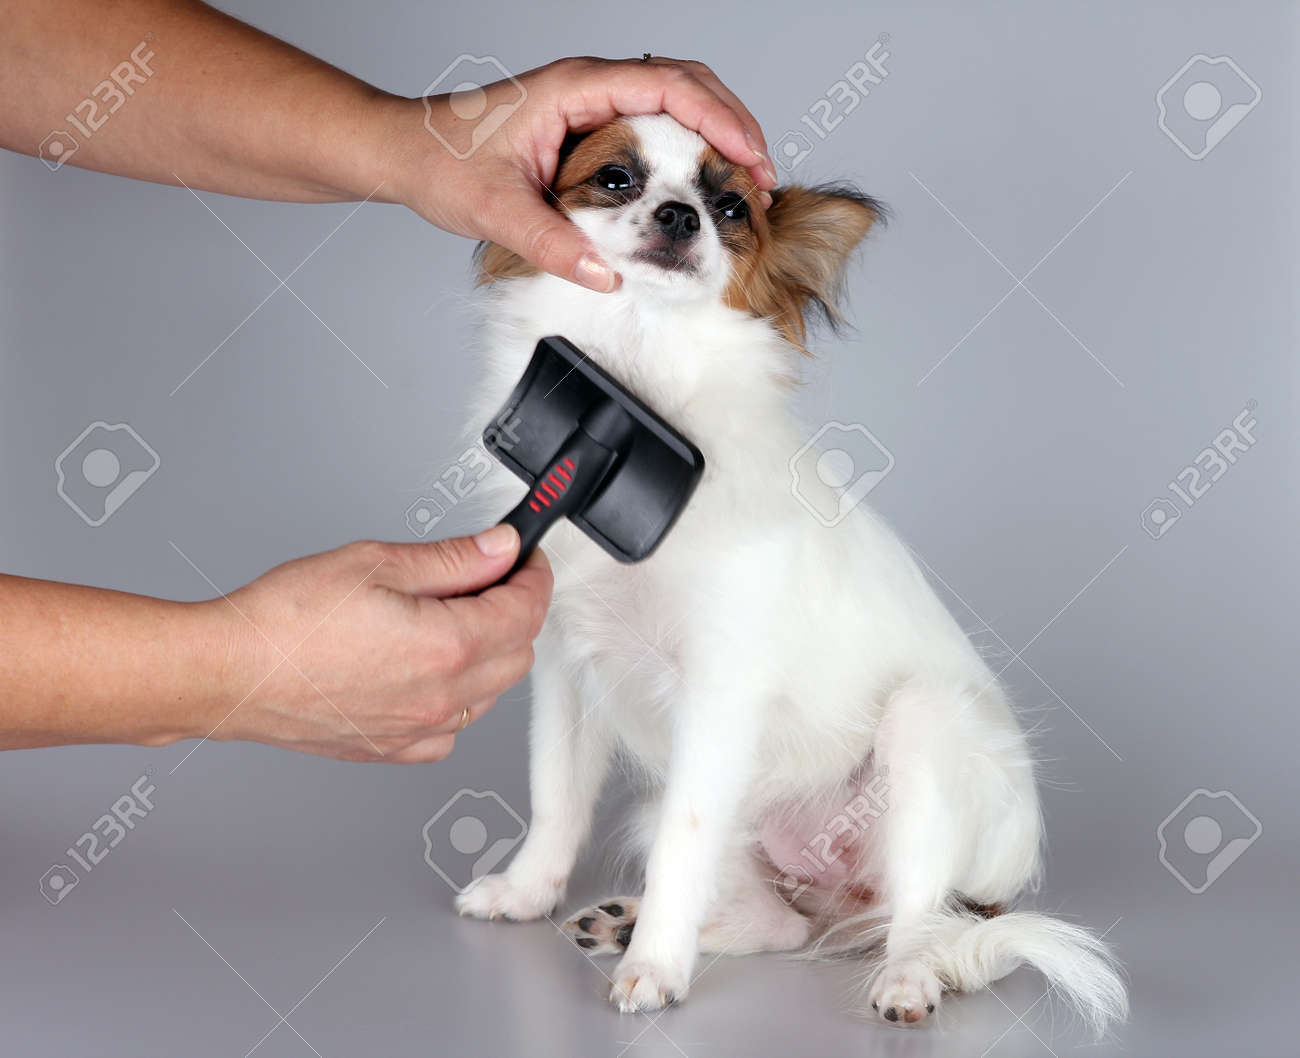 Papillon Puppy Getting His Hair Cut At The Groomer Stock Photo